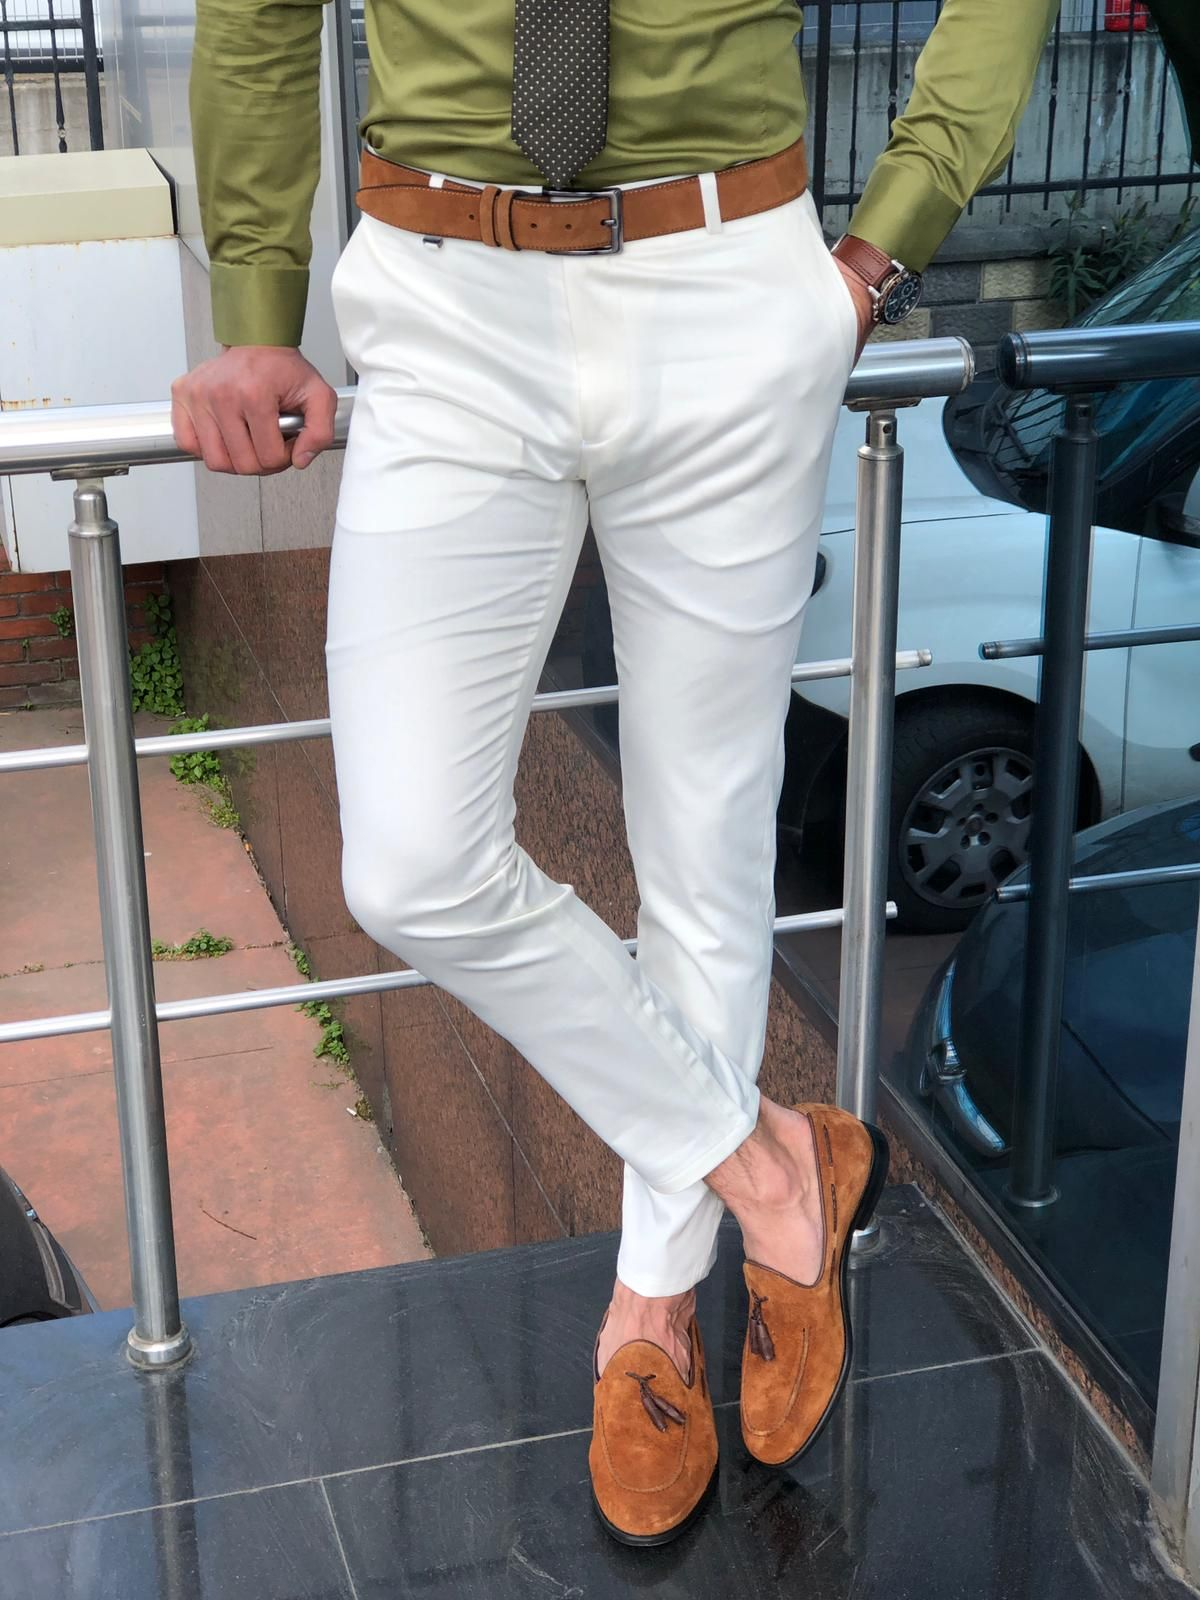 Buy Ecru Slim Fit Cotton Pants By Gentwith Com With Free Shipping Slim Fit Dress Pants Men Slim Fit Cotton Pants White Pants Men [ 1600 x 1200 Pixel ]